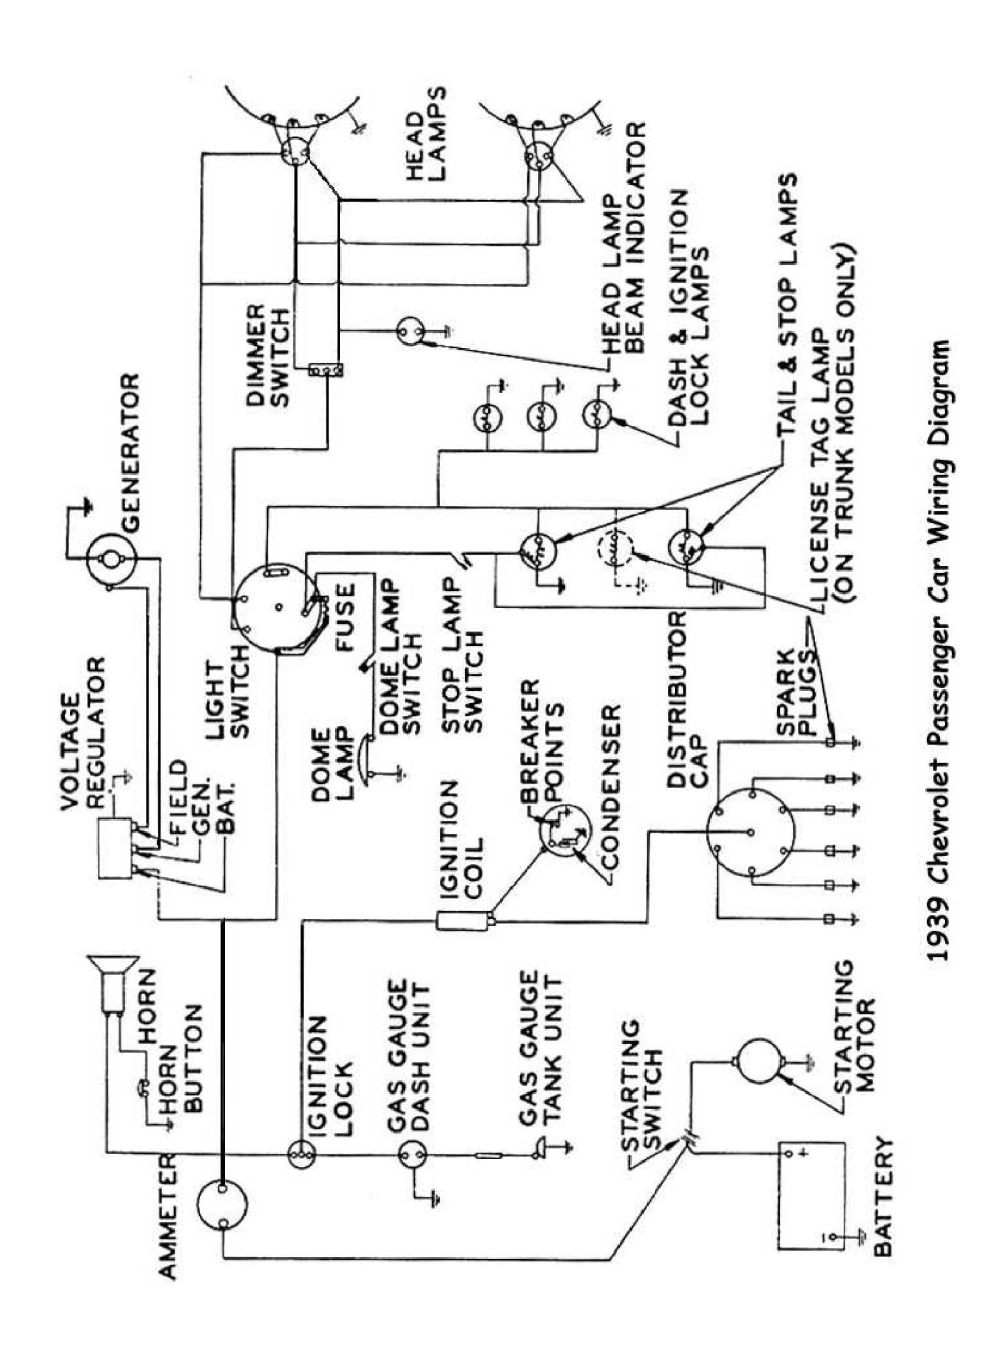 medium resolution of chevy wiring diagrams lighting and ignition circuit diagram for 1934 chevrolet cars